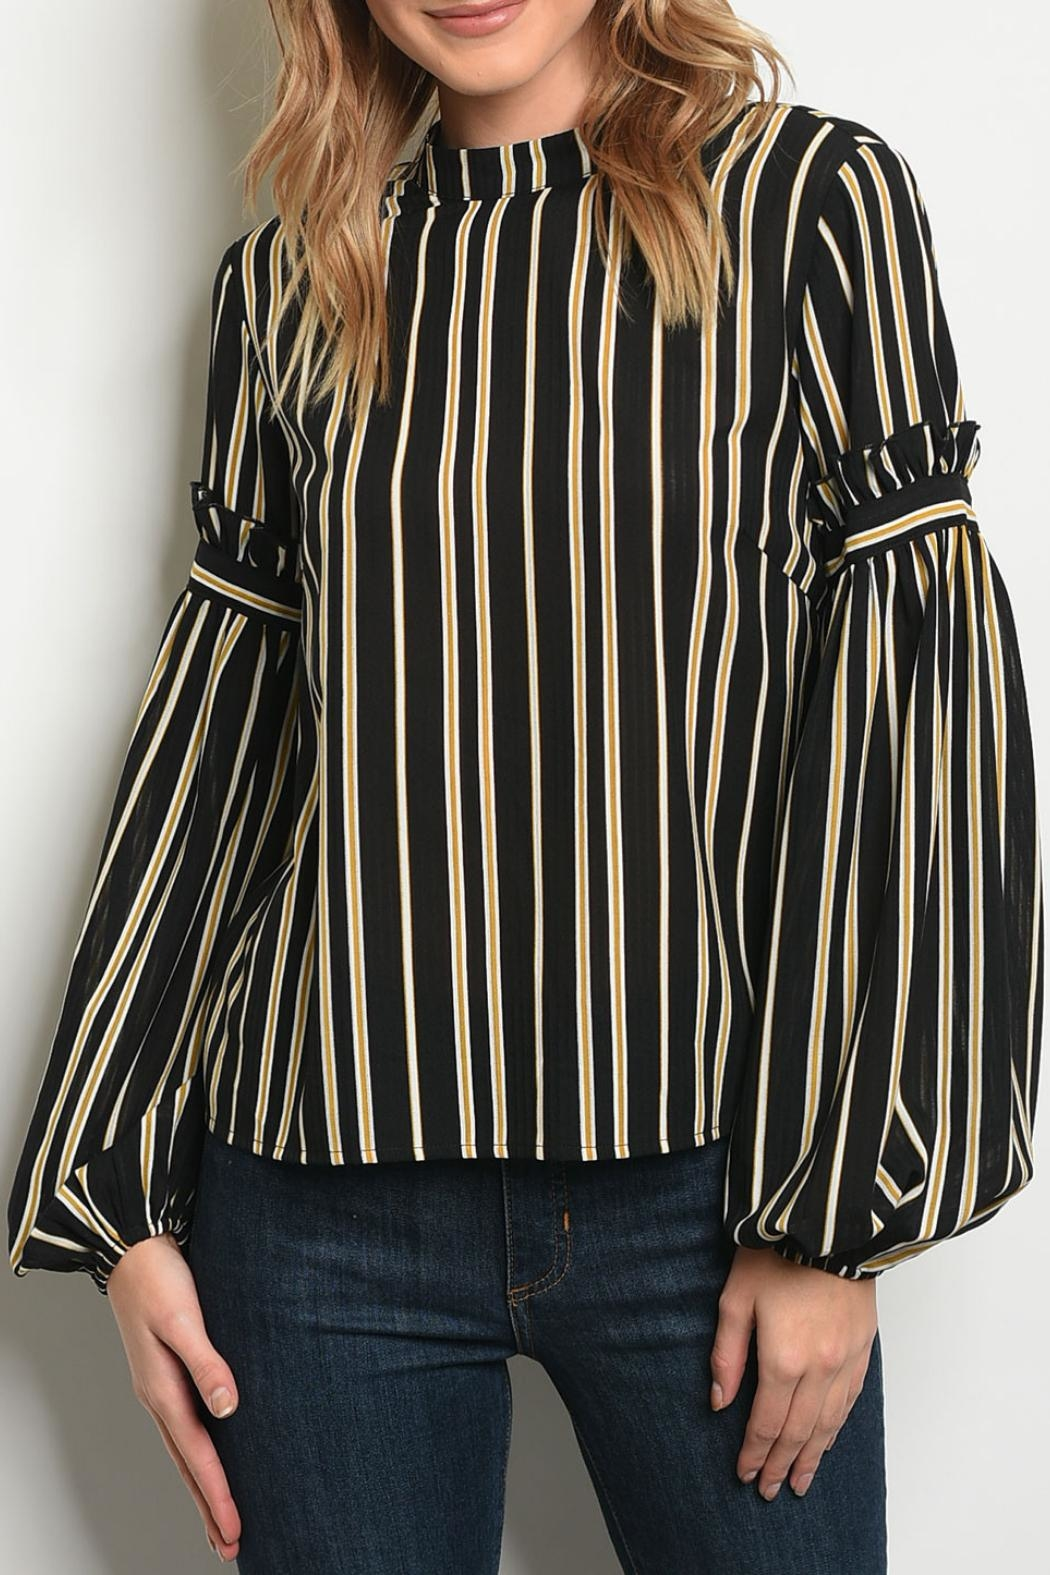 Le Lis Mustard Striped Top - Main Image